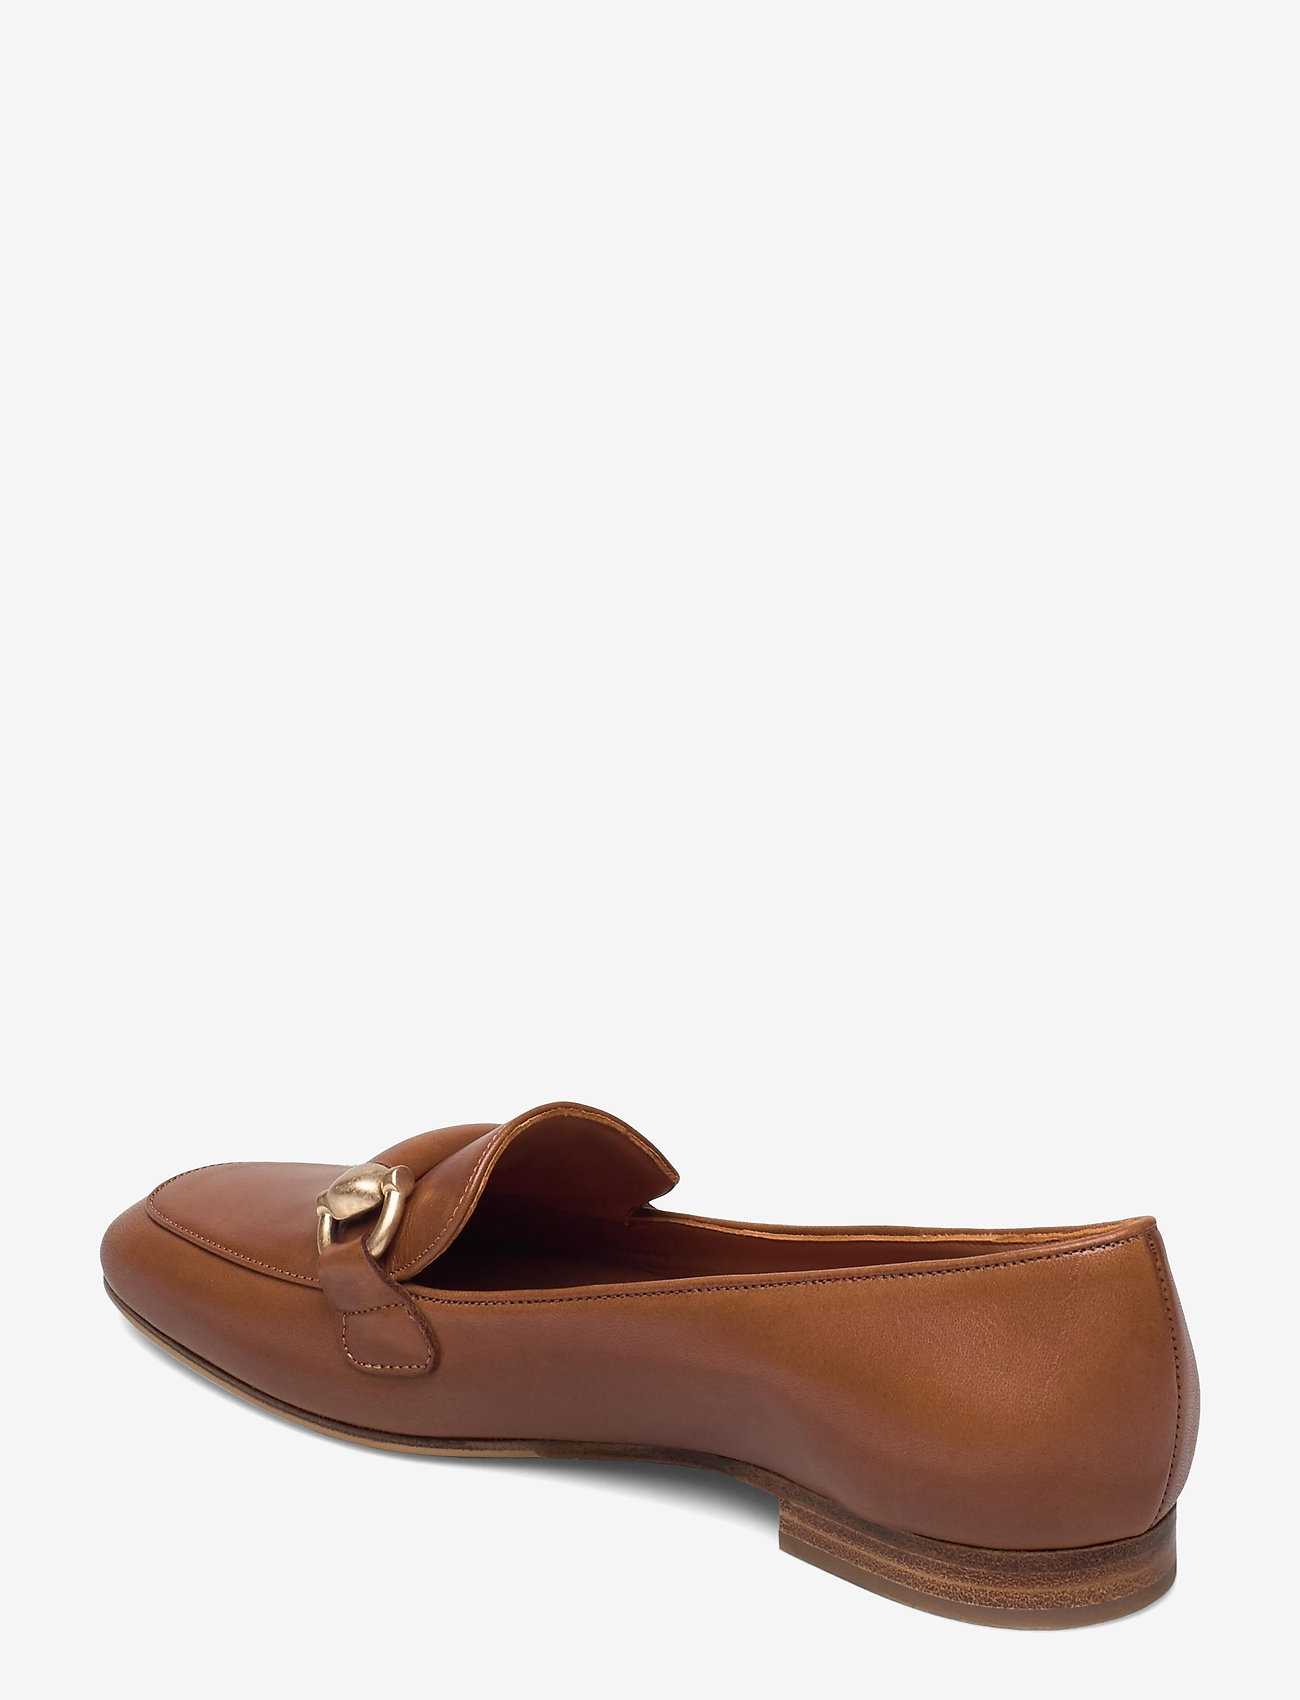 NOTABENE - Libby - instappers - brown leather - 2